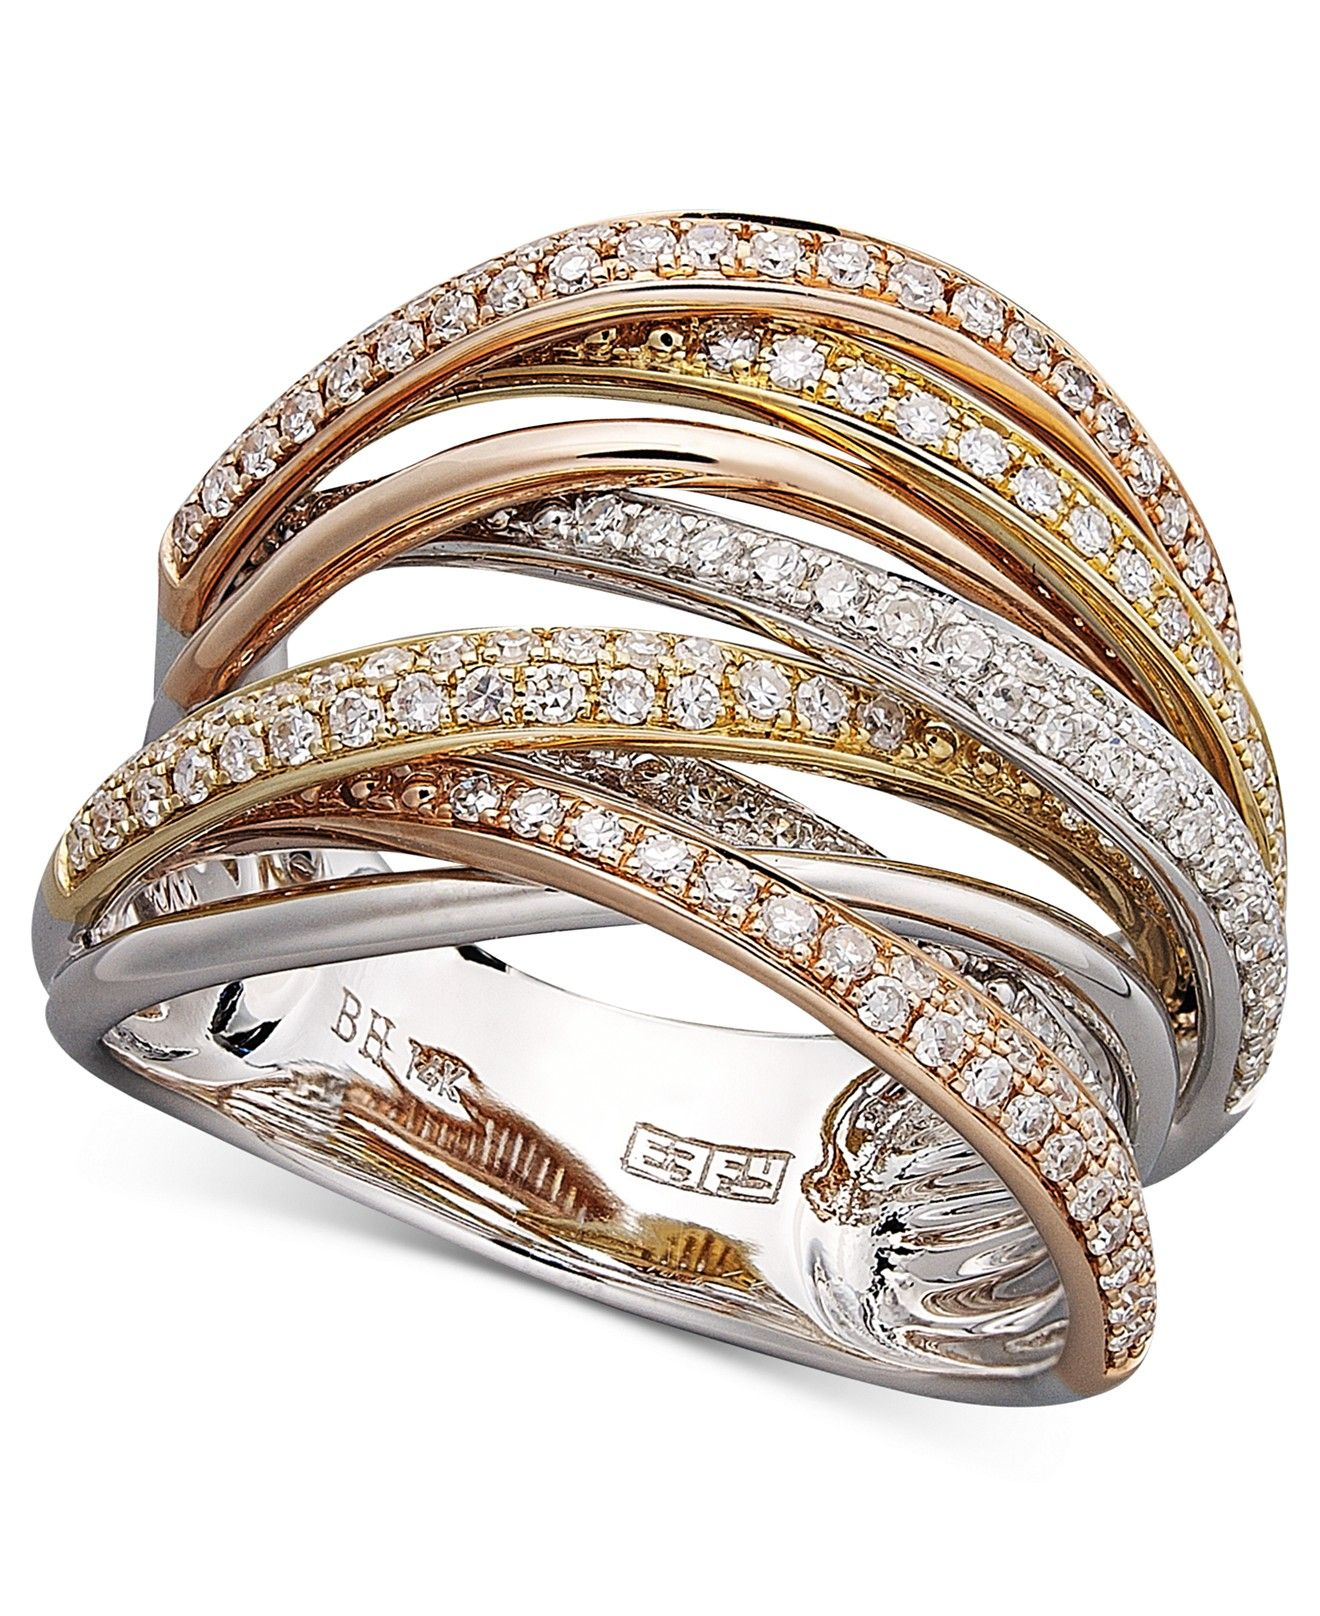 06c65bd36 Trio by EFFY Diamond Diamond Overlap (3/4 ct. t.w.) in 14k White Gold and  Rose Gold - Rings - Jewelry & Watches - Macy's